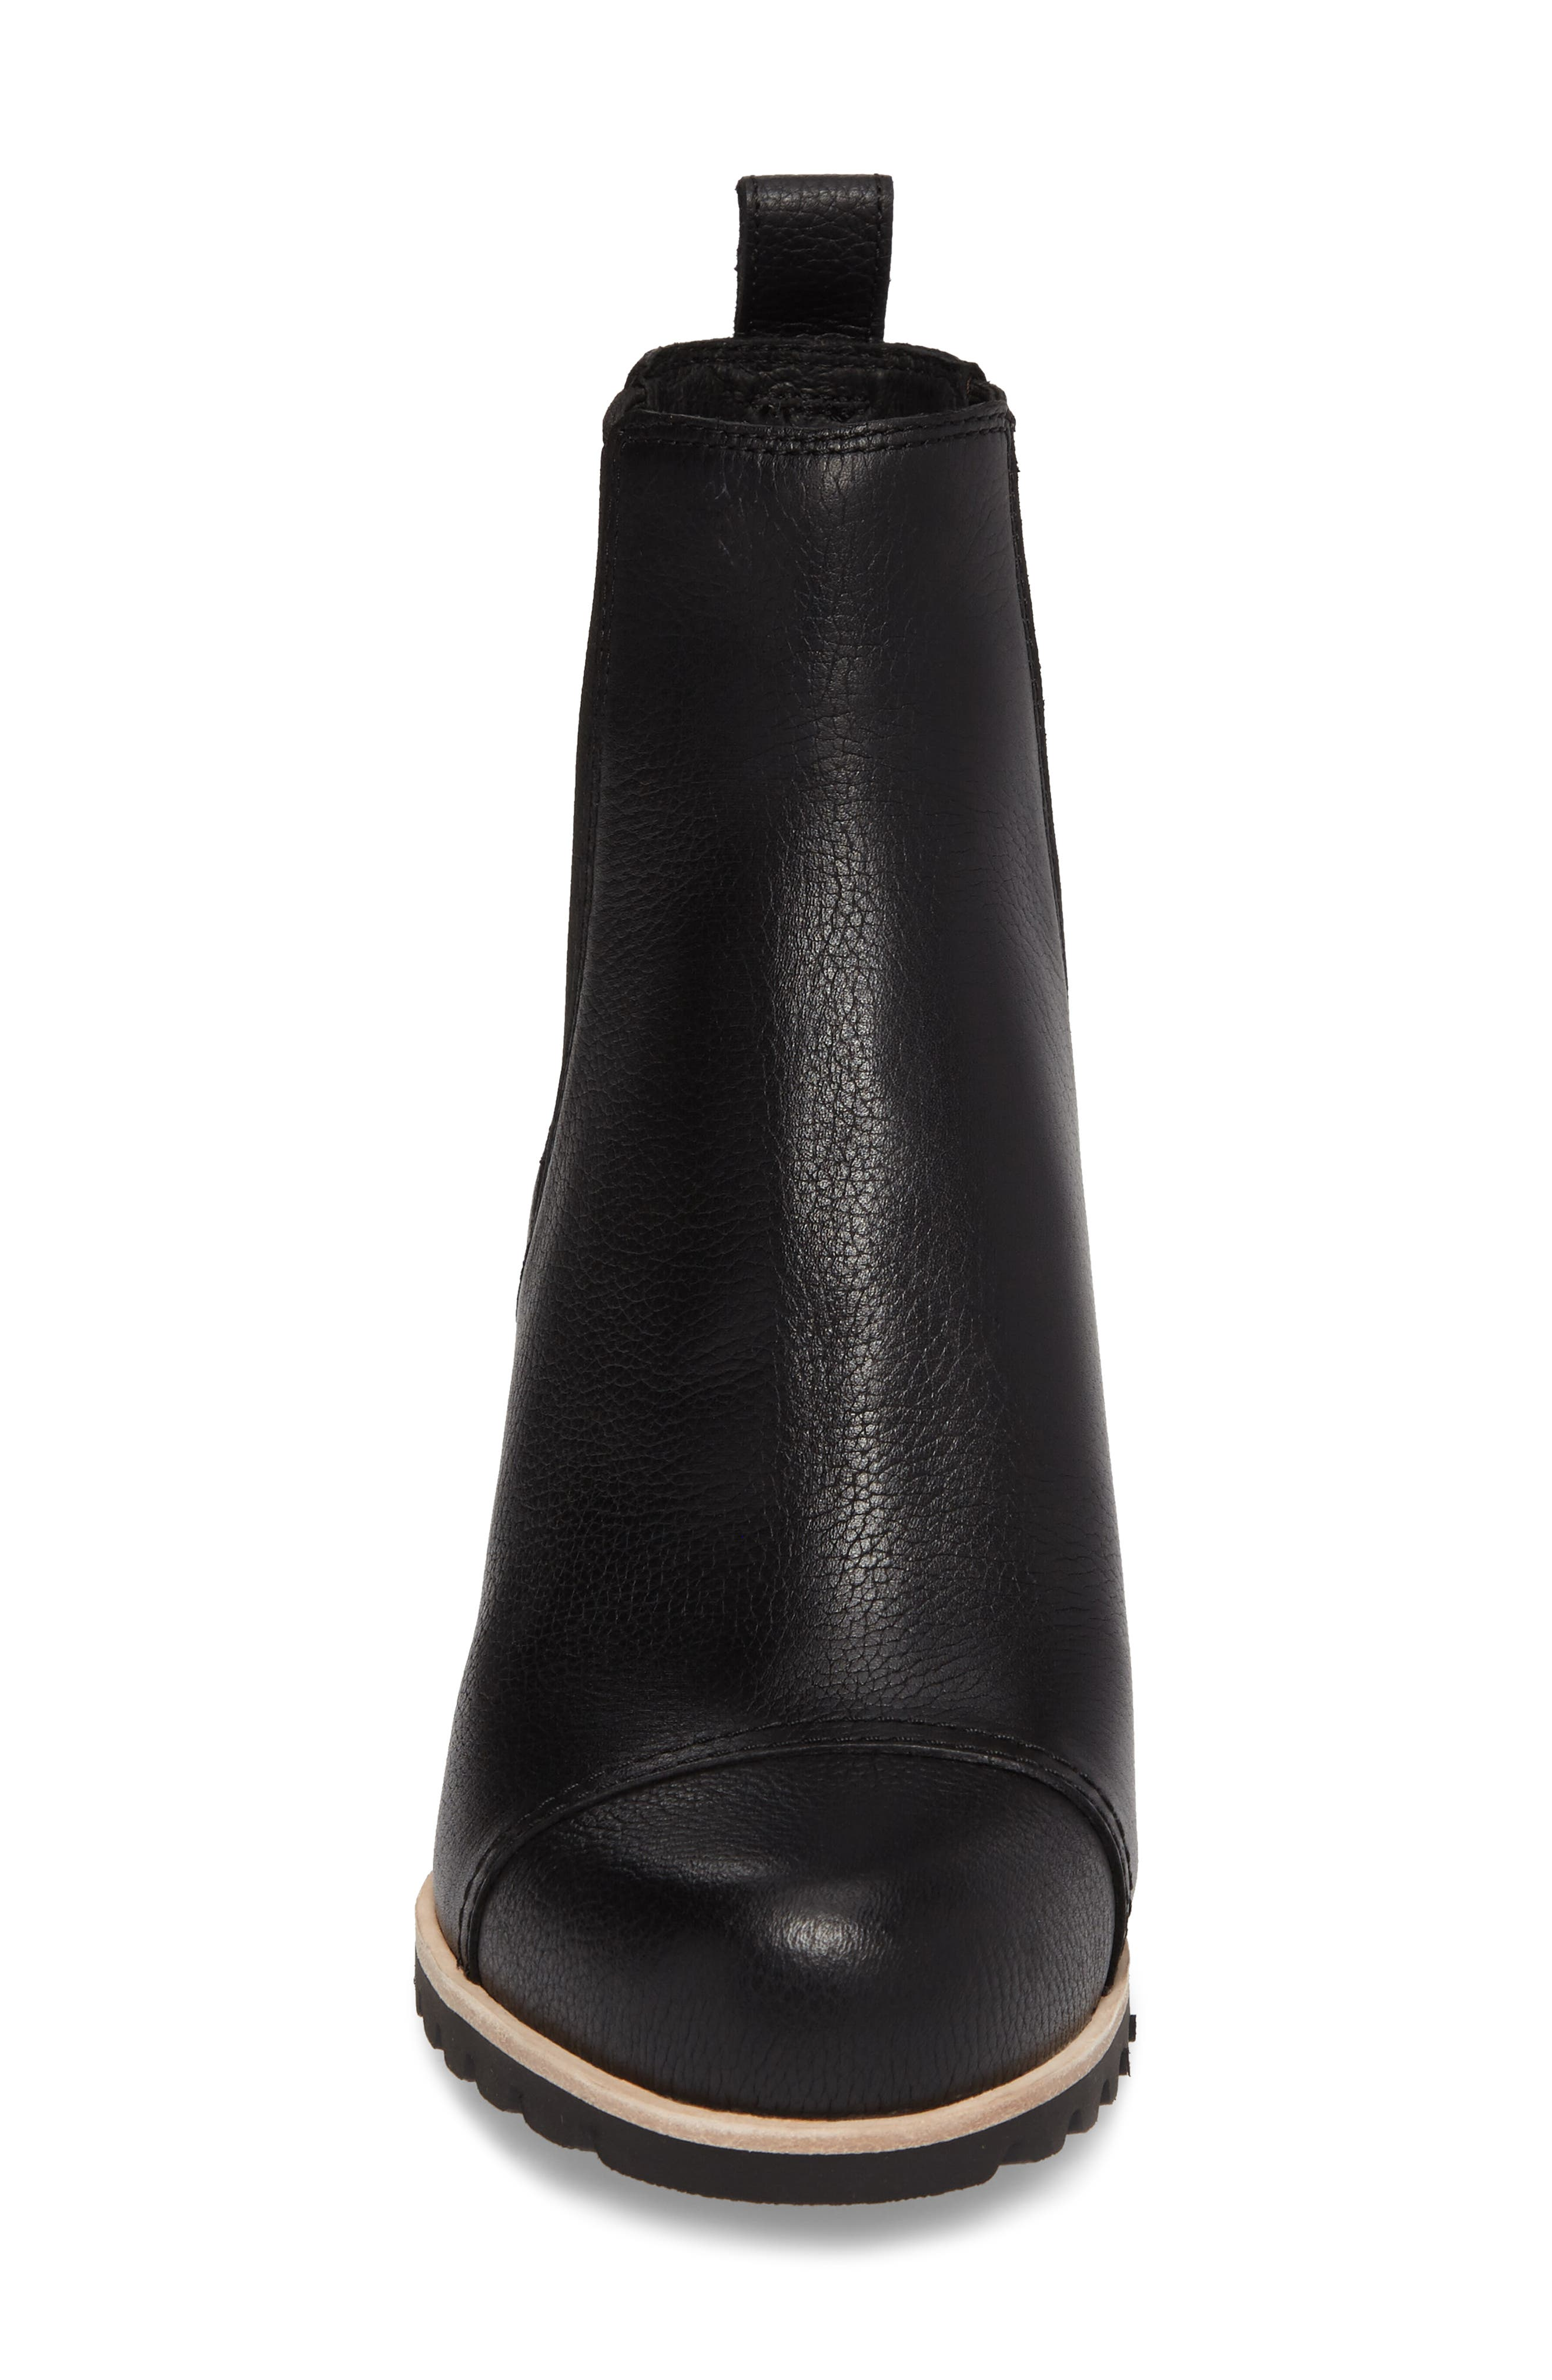 Pax Waterproof Wedge Boot,                             Alternate thumbnail 4, color,                             Black Leather